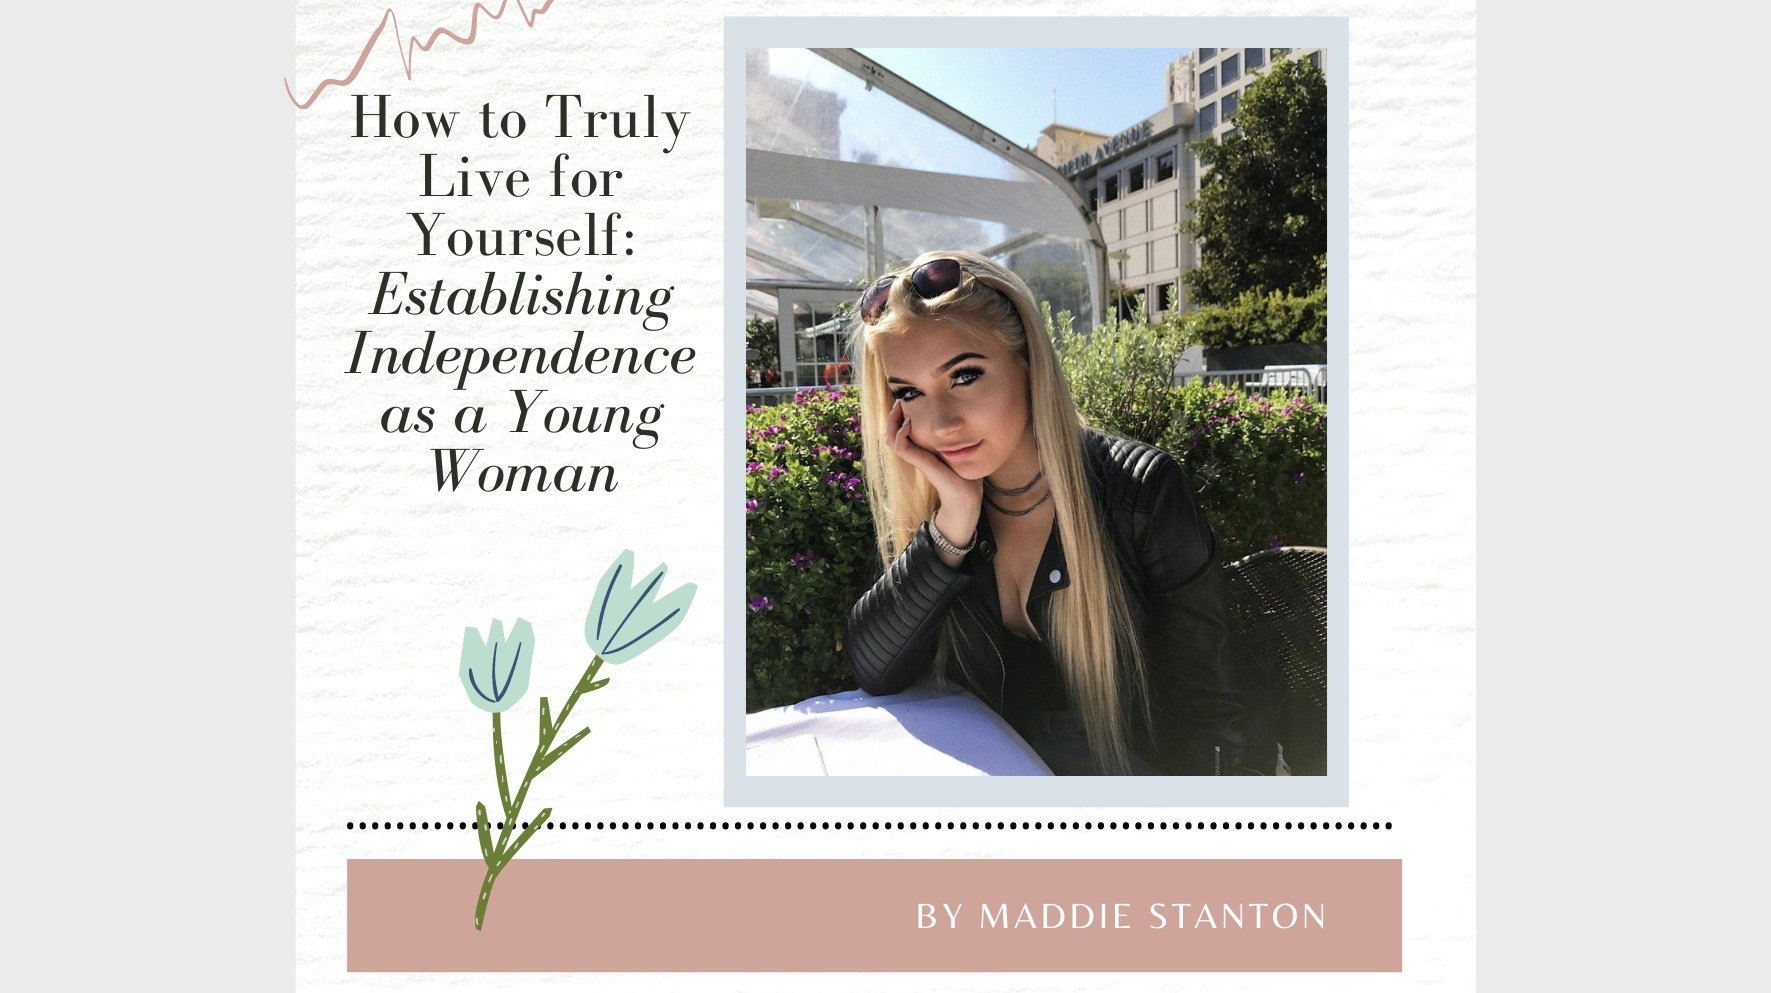 How To Truly Live For Yourself: Establishing Independence As A Young Woman